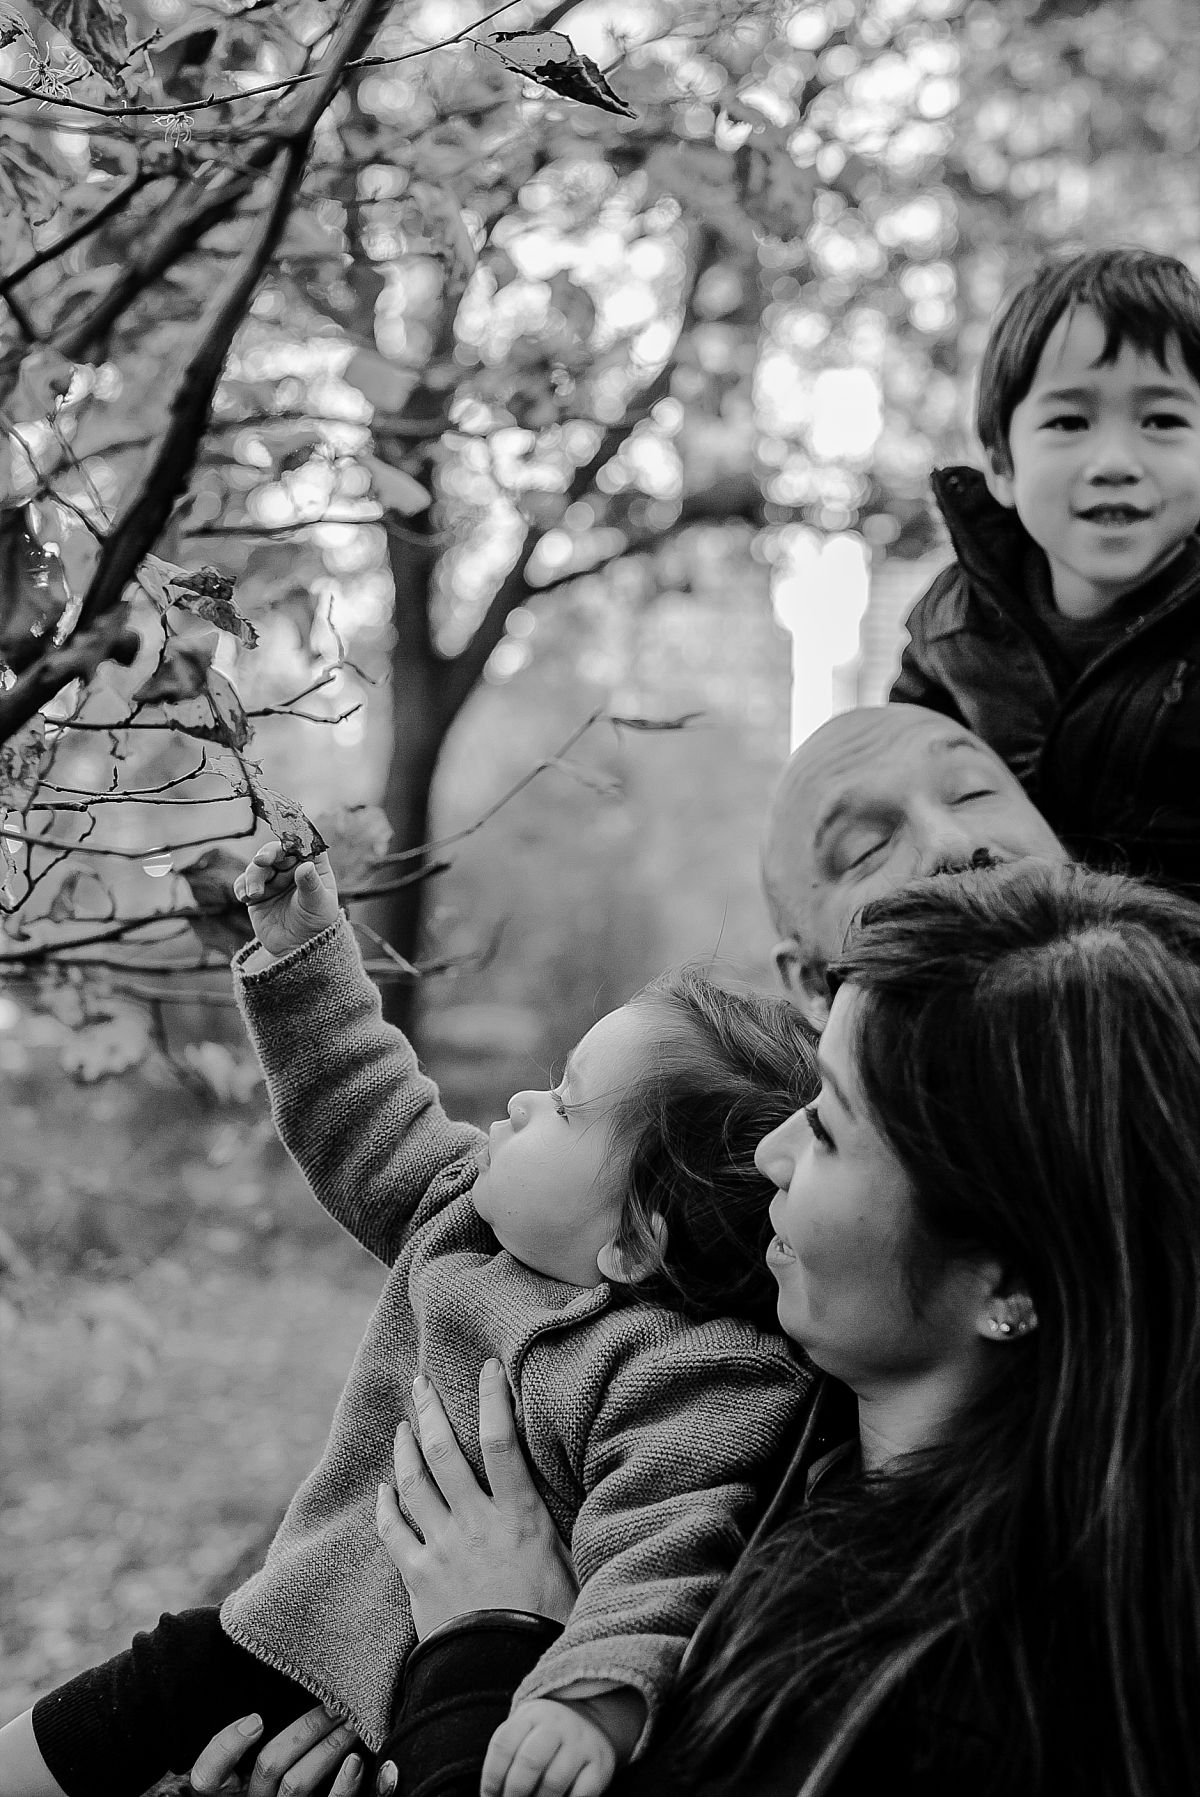 family playing with leaves of tree at the bottom of central park on chilly winters day. image by krystil mcdowall photography